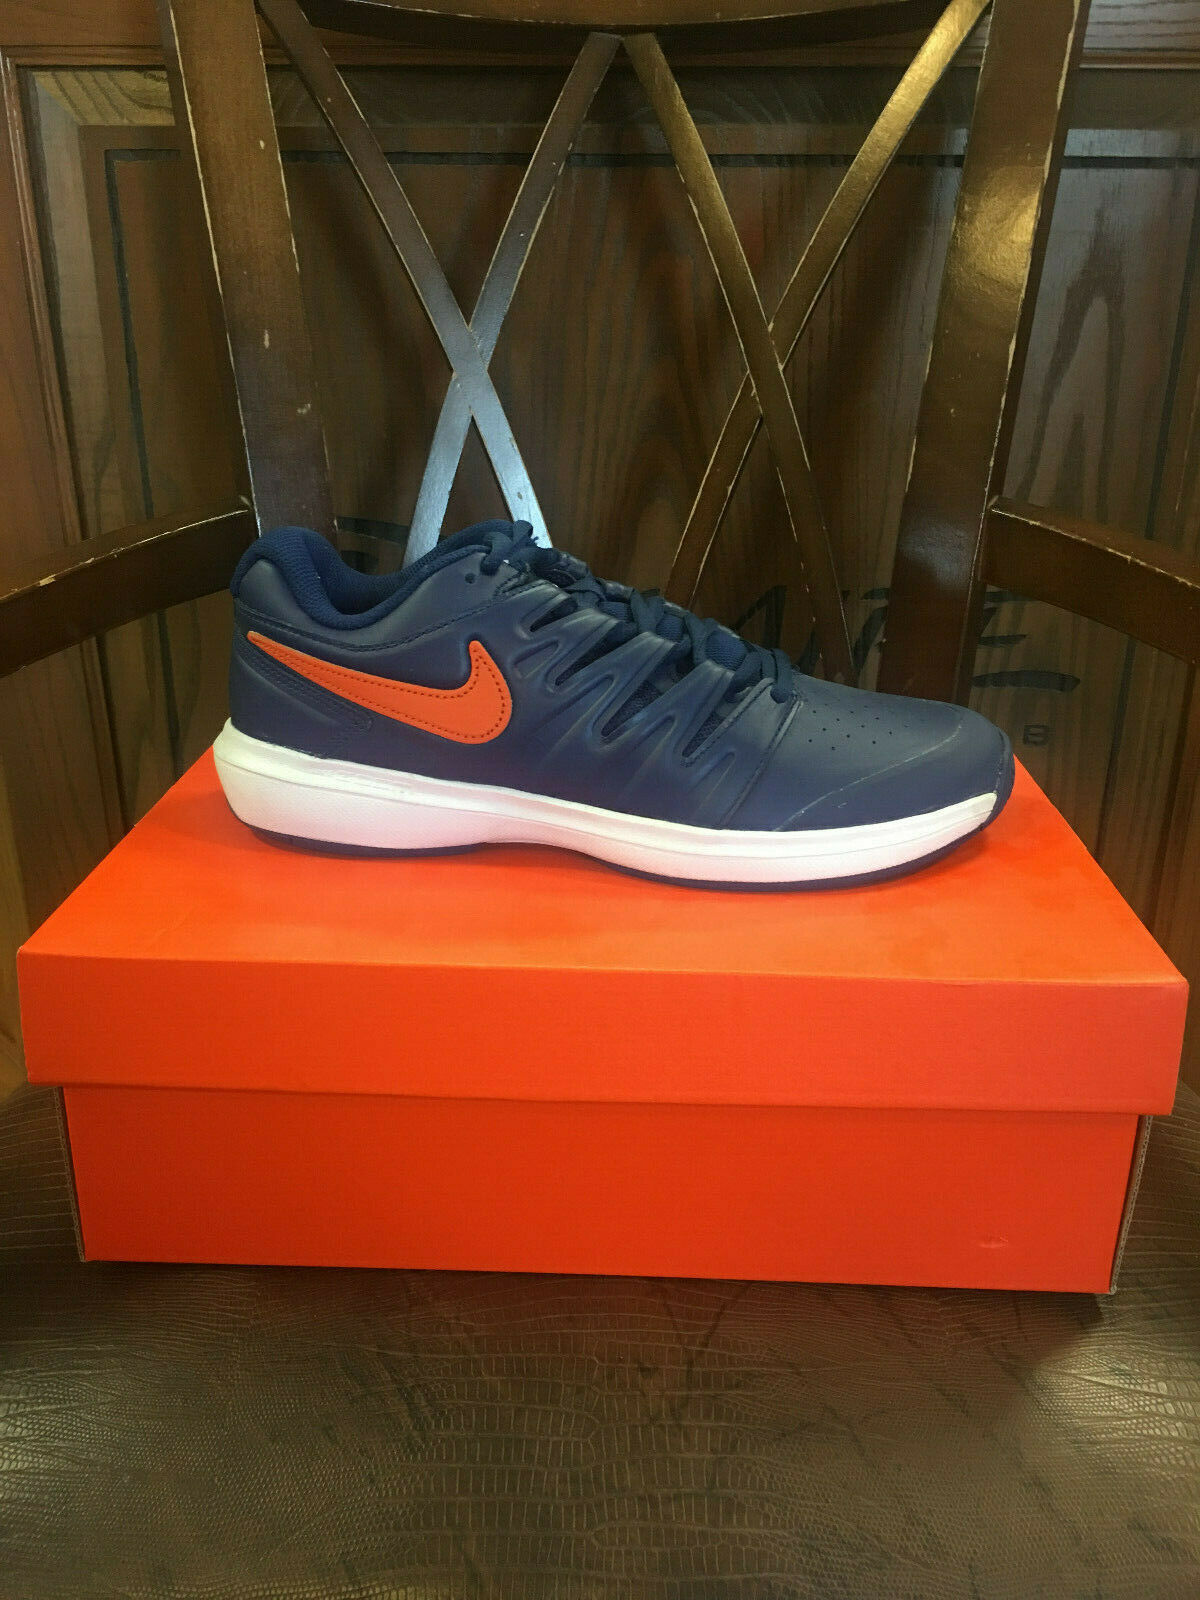 NIKE AIR ZOOM PRESTIGE LEATHER HC. BRAND NEW MENS TENNIS SHOES. MULTIPLE SIZES